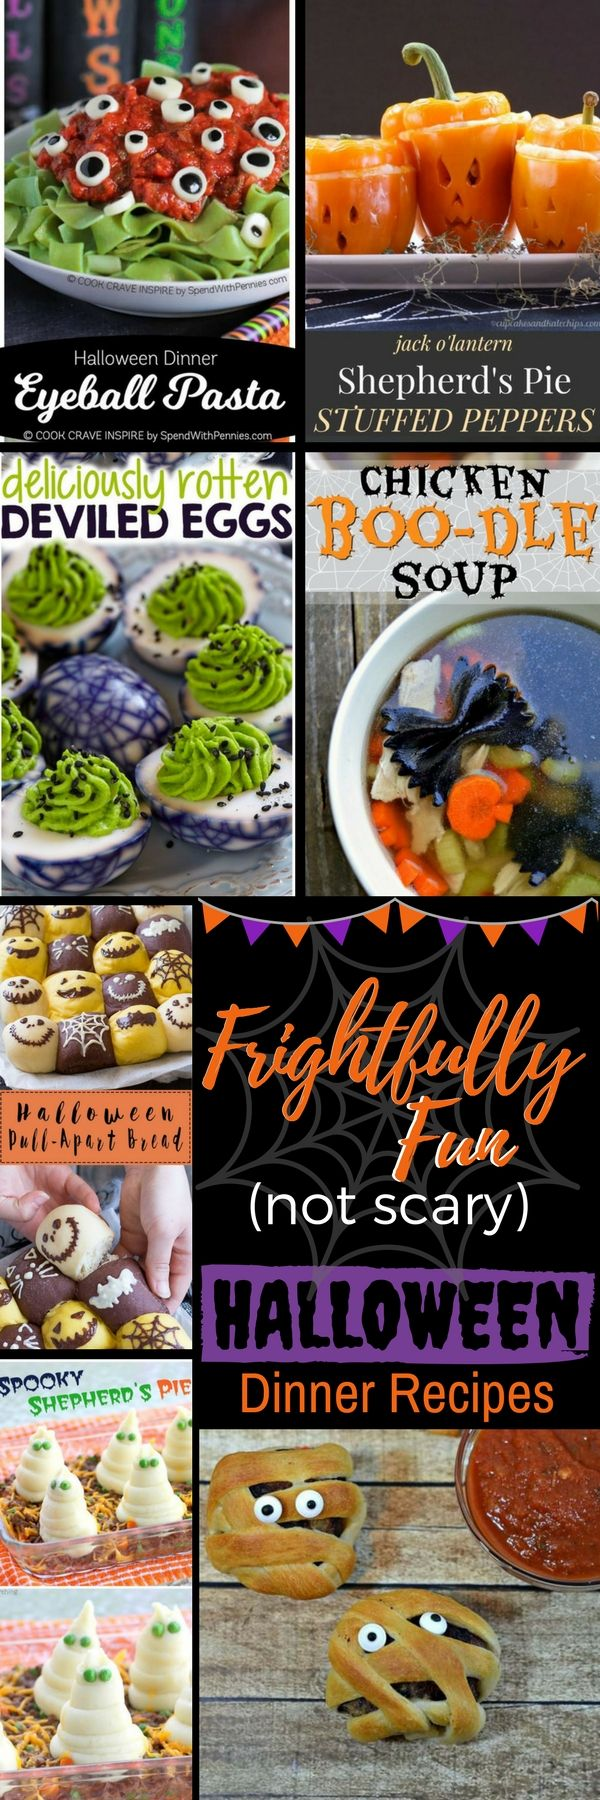 Halloween Food Dishes the Kids Will Love | Serendipity and Spice - Halloween recipes - kid friendly recipes - food for preschoolers - party ideas - spooky treats - savory dinner ideas - festive dinner - Halloween Dinner Ideas